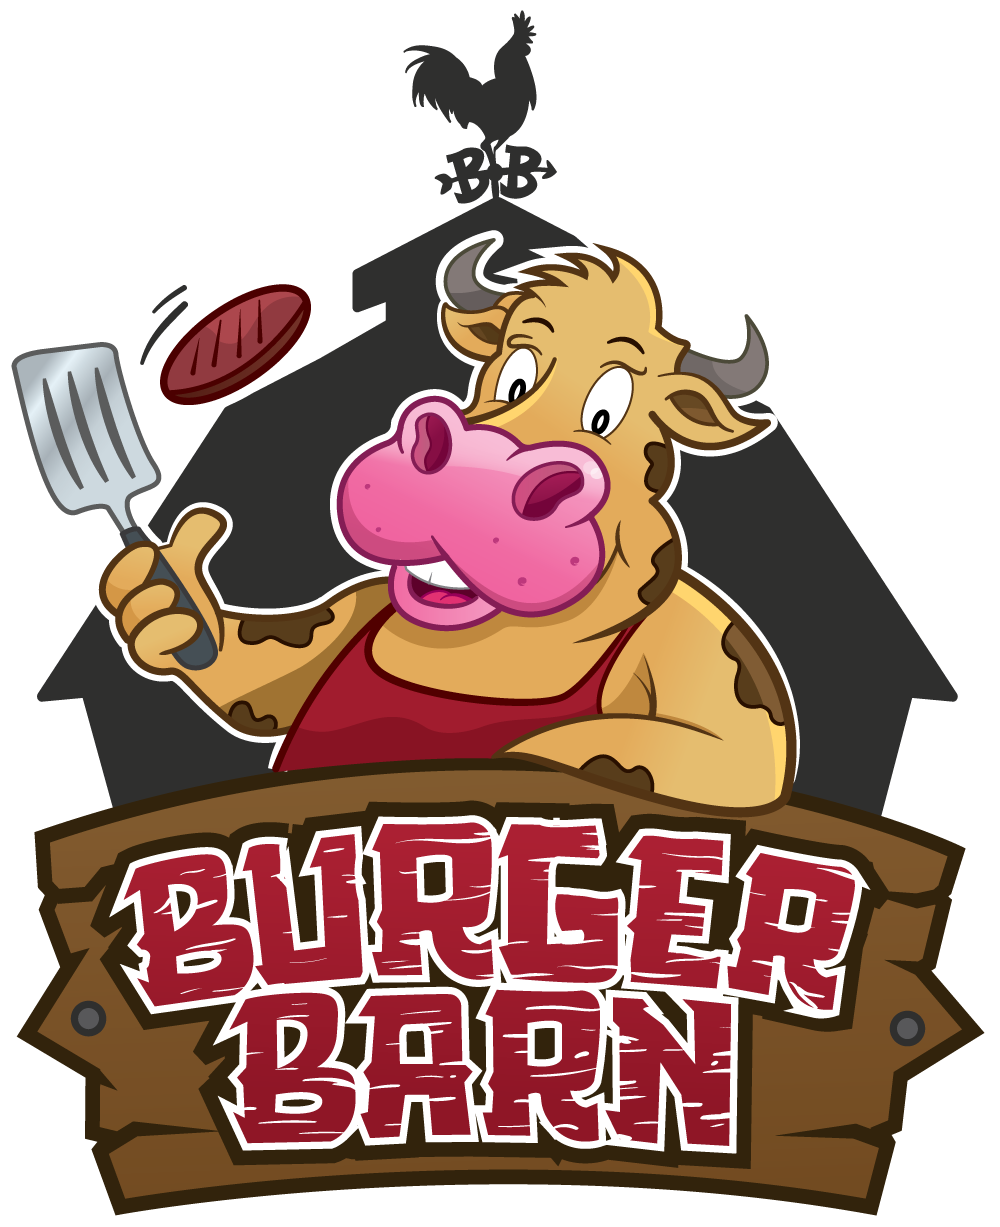 The Burger Barn- Ashland WI